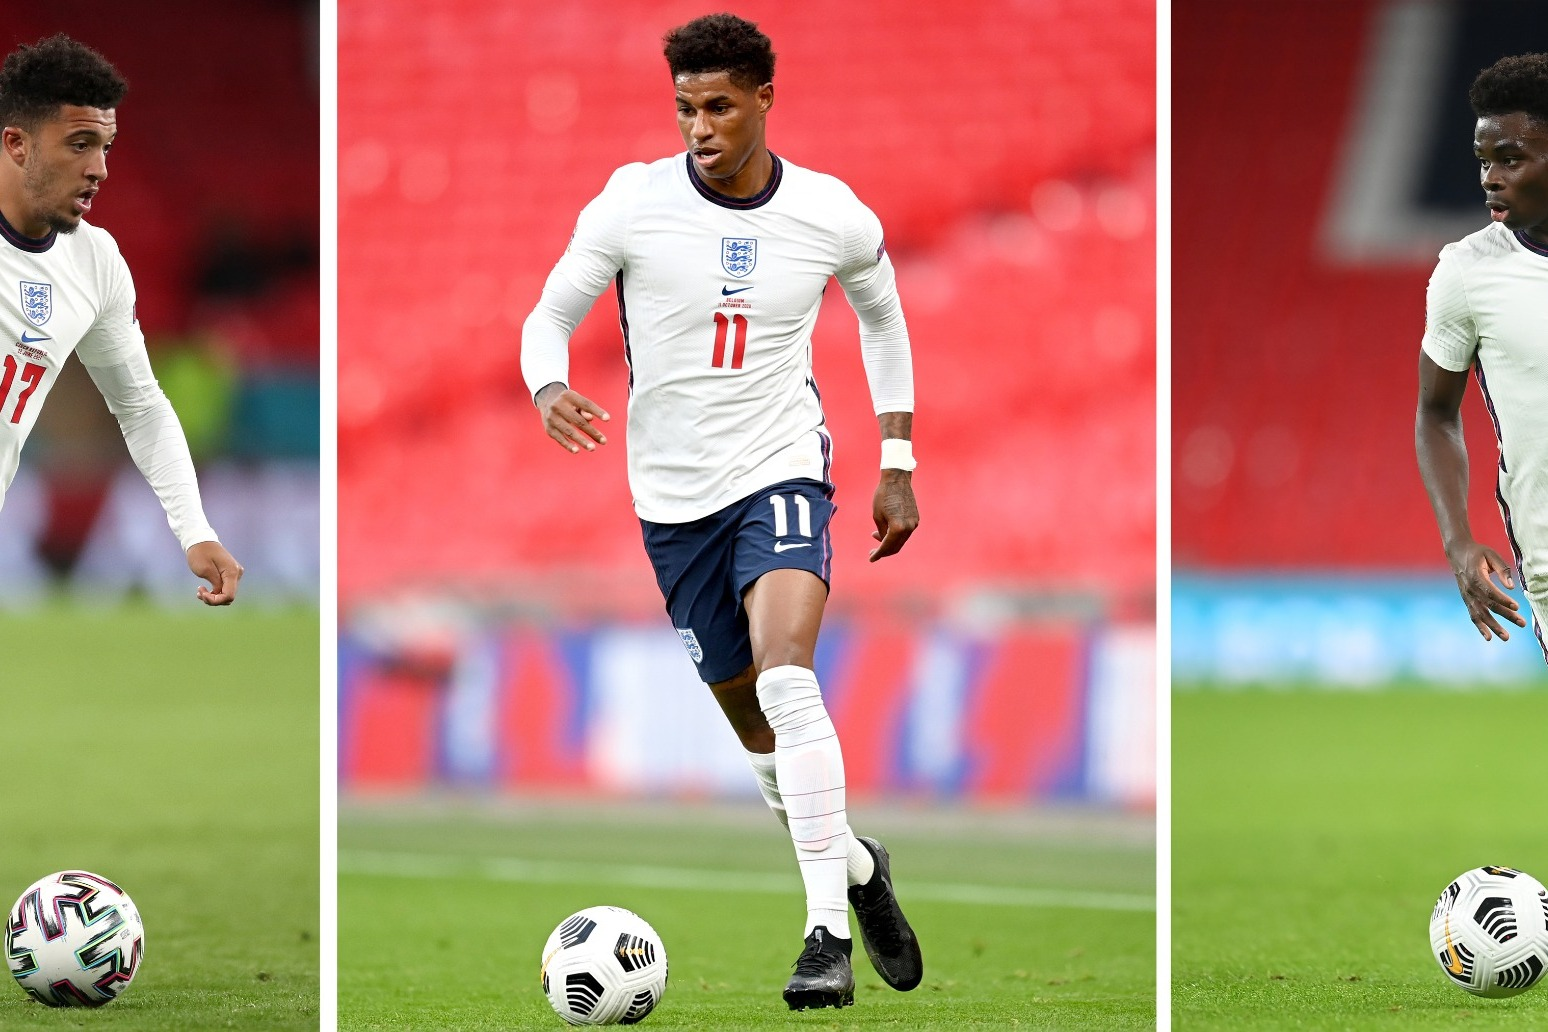 Police investigating racist abuse of England players make 11 arrests